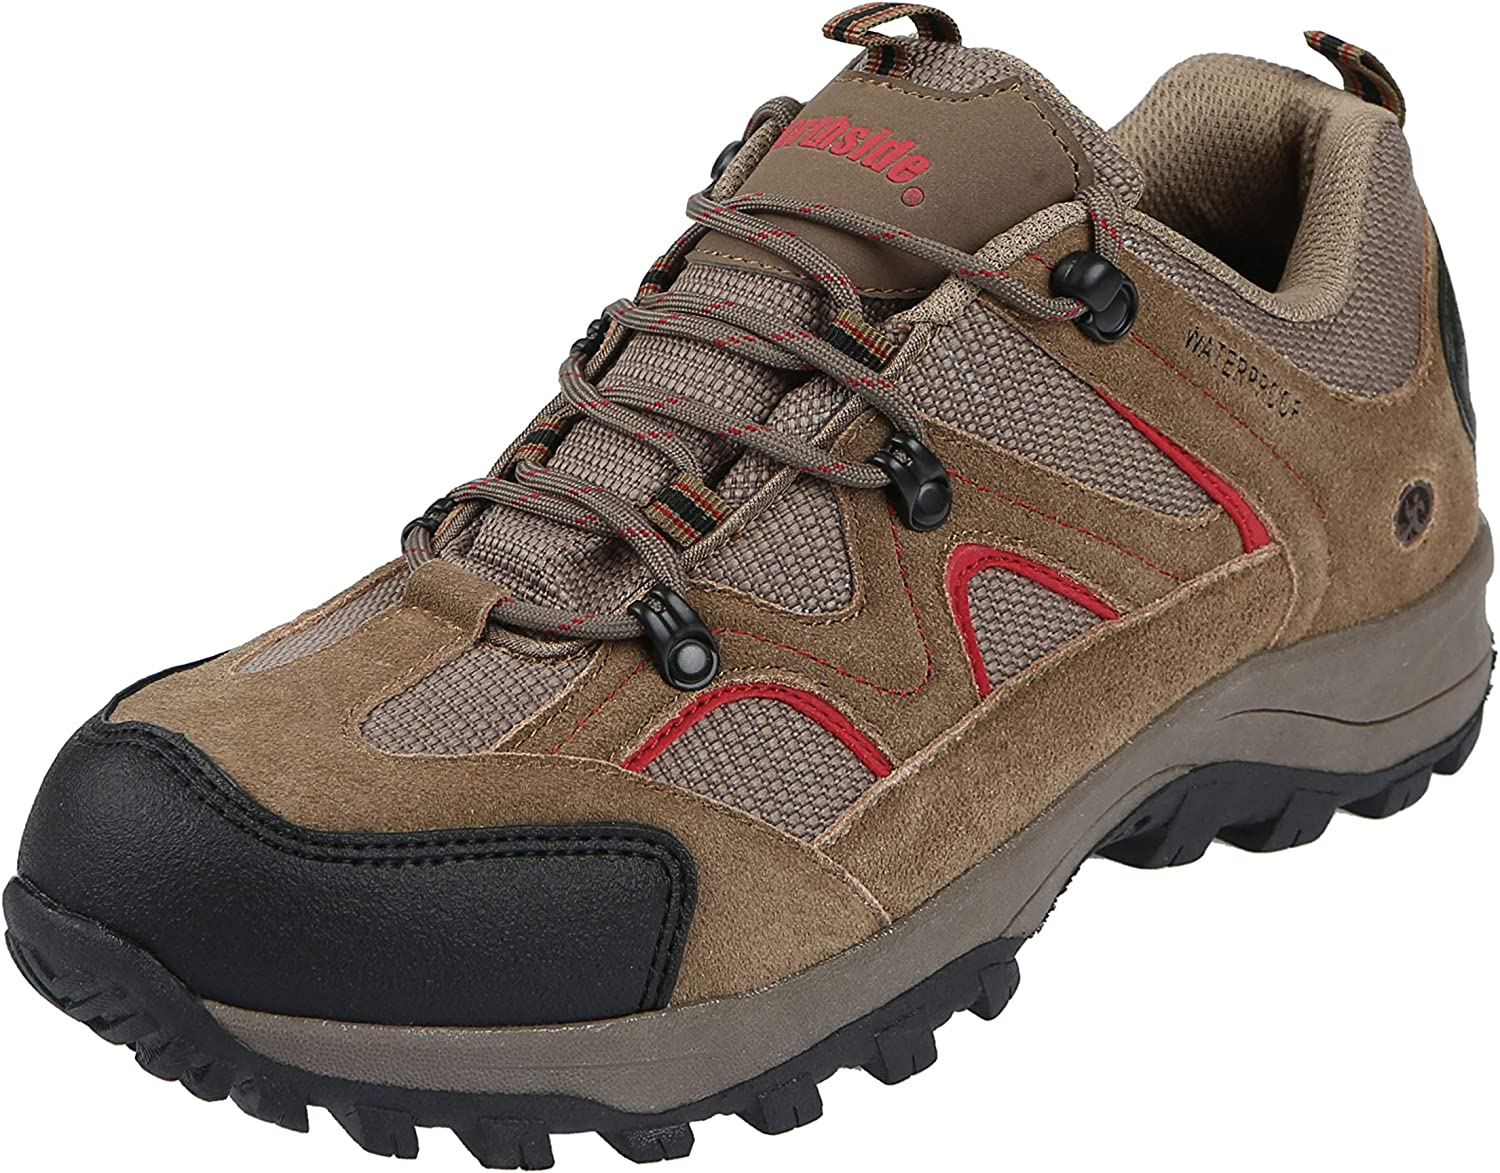 Animer and price revision Northside Manufacturer direct delivery Men's Snohomish Low Hiking Waterproof Shoe